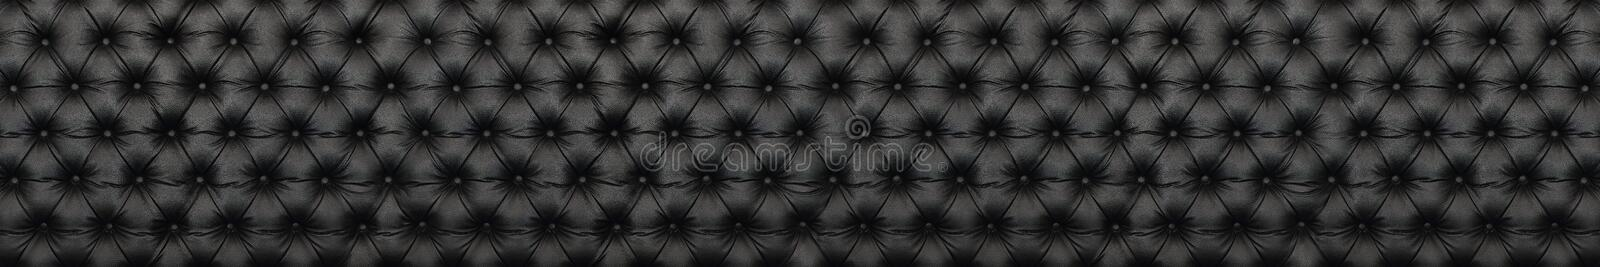 panorama of elegant black leather texture with buttons for pattern and background royalty free stock photos